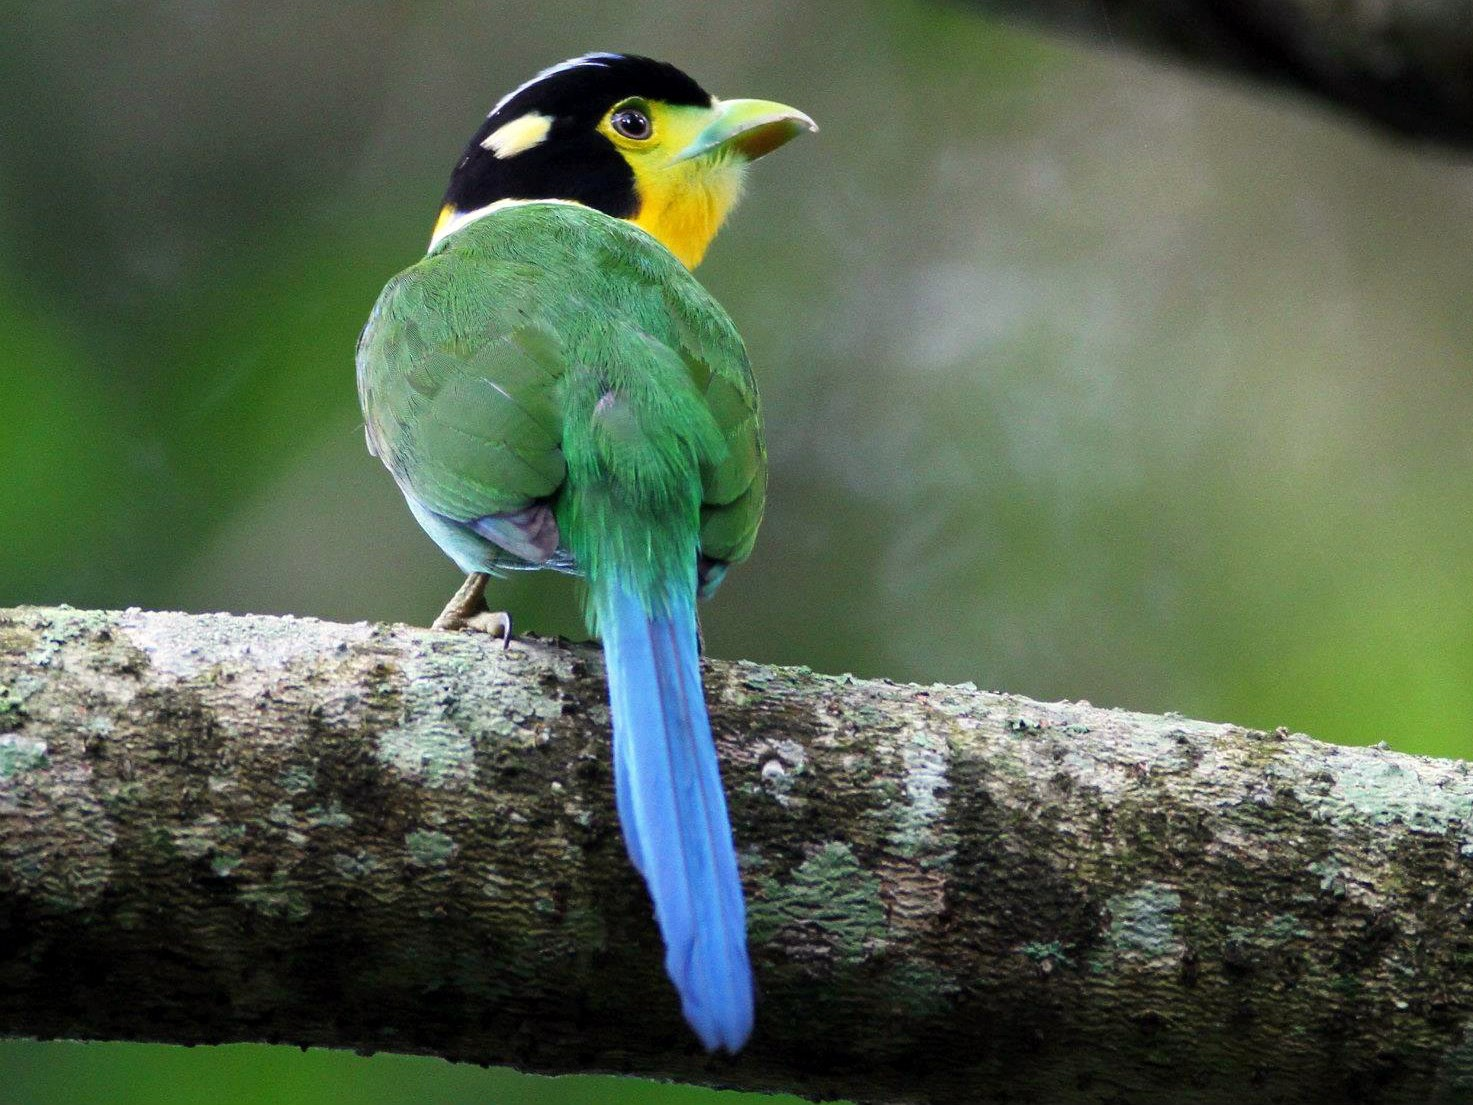 Long-tailed Broadbill - Ting-Wei (廷維) HUNG (洪)